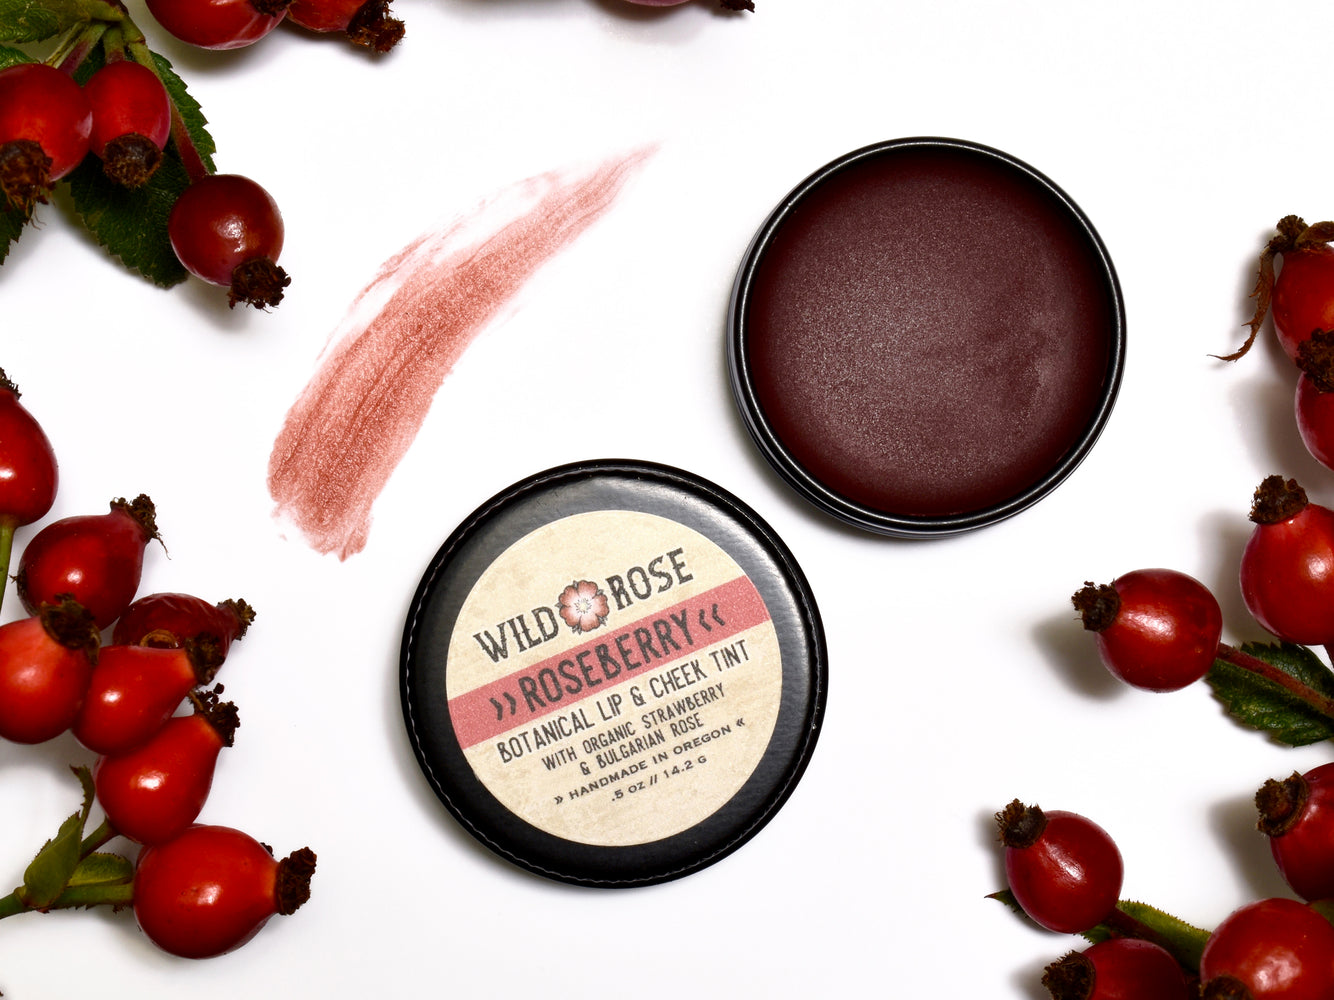 Roseberry - Botanical Lip & Cheek Tint